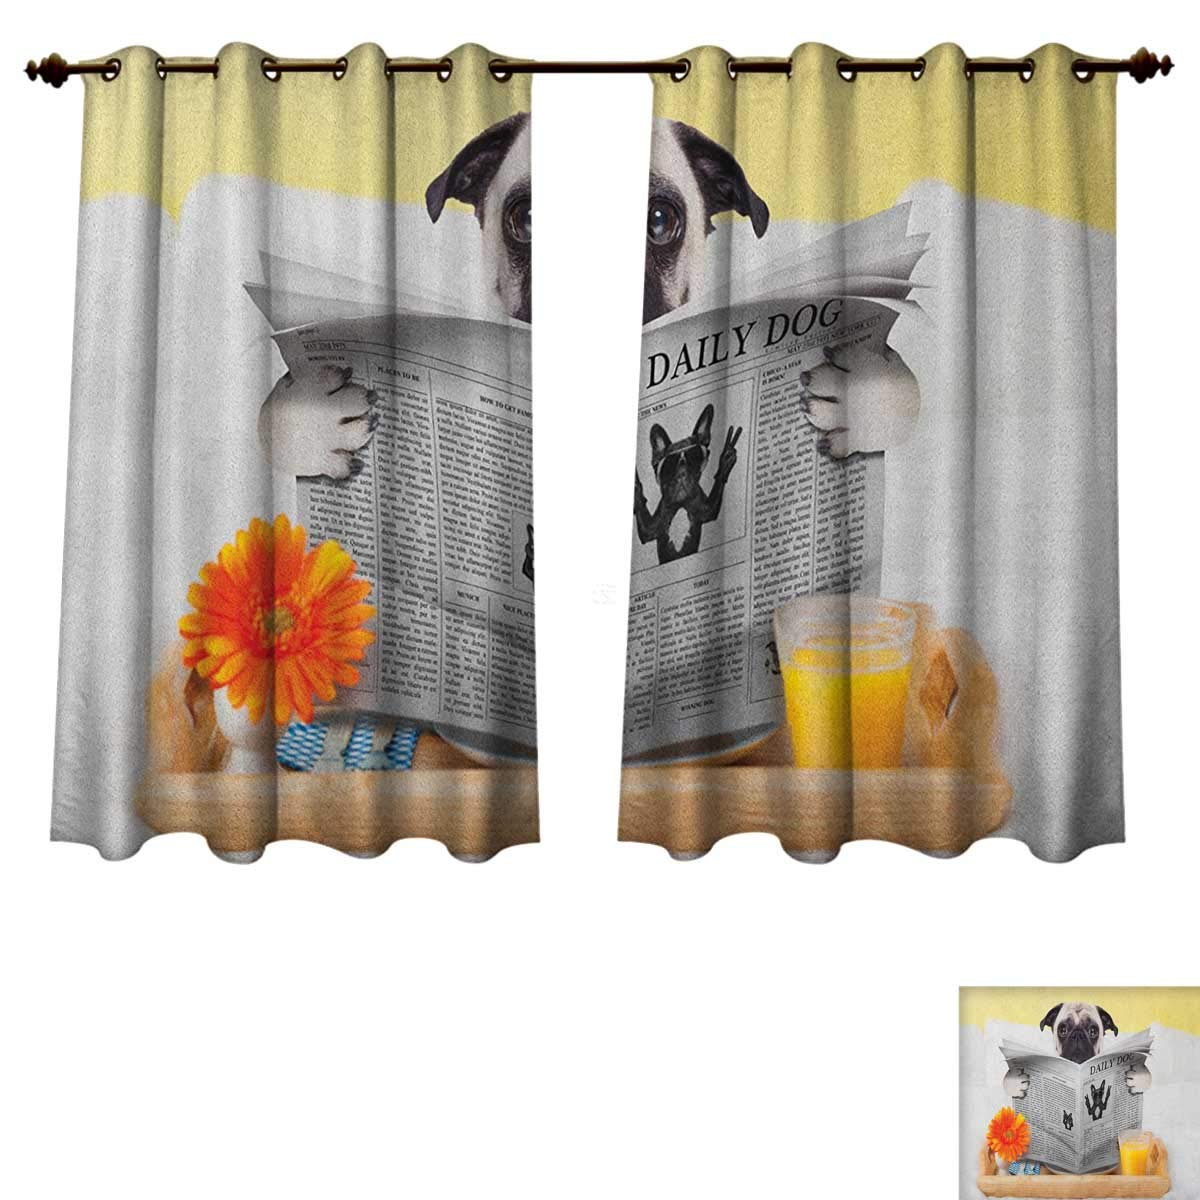 PriceTextile Pug Bedroom Thermal Blackout Curtains Pug Reading Daily Dog Breakfast in Bed Sunday Family Fun Comedic Image Window Curtain Drape Pale Brown Yellow Orange Size W55 xL63